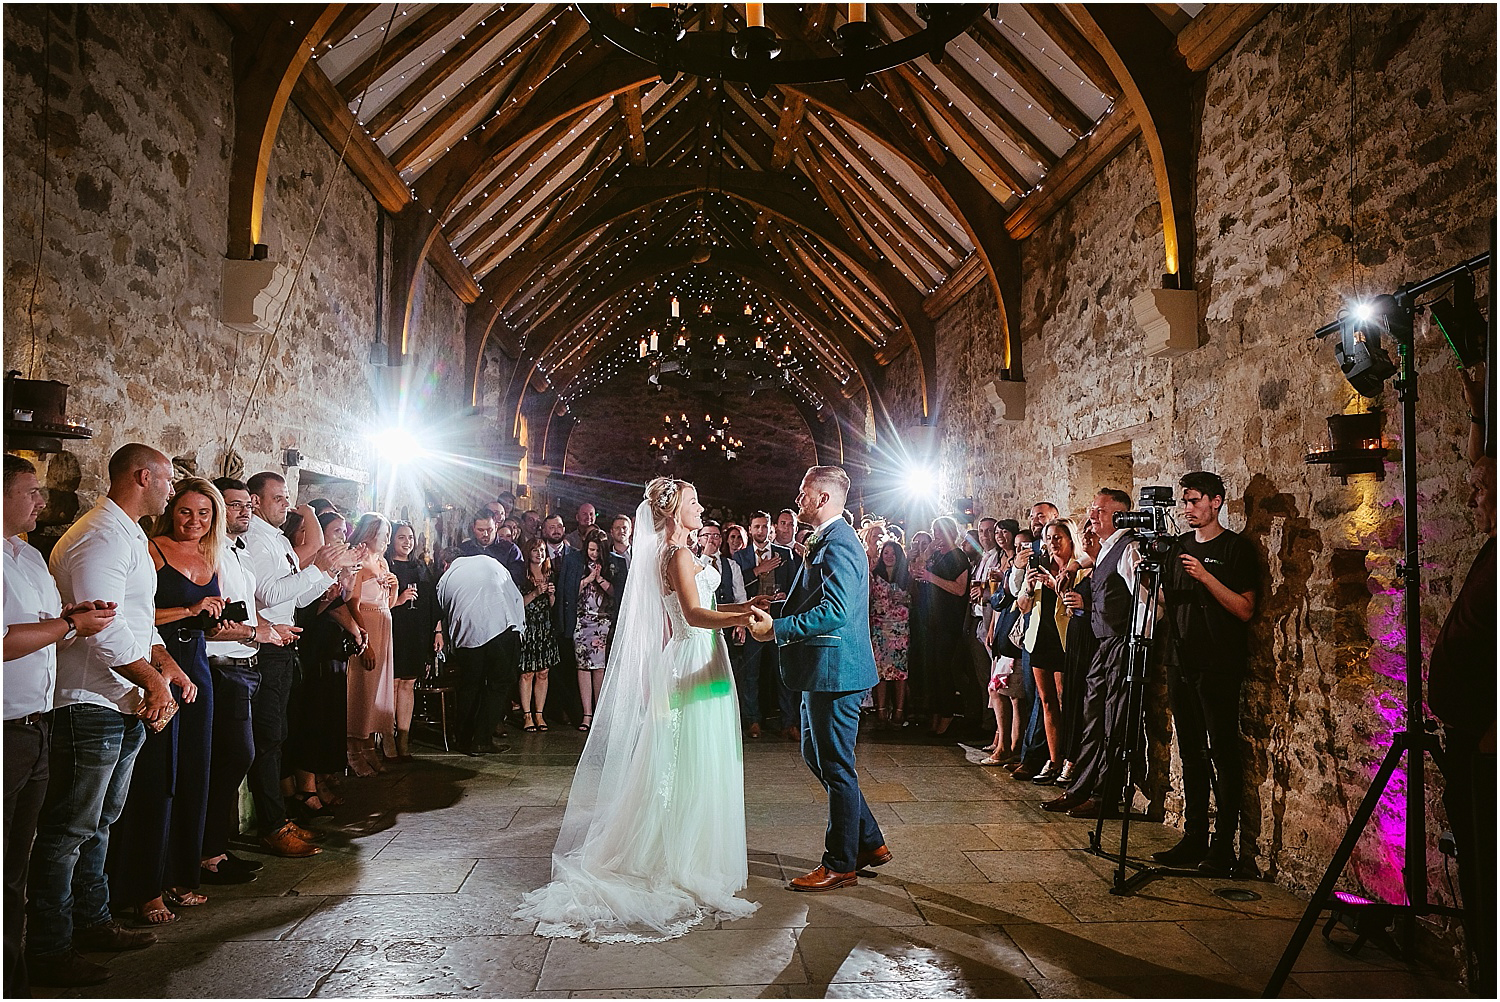 Wedding at Healey Barn - wedding photography by www.2tonephotography.co.uk 098.jpg